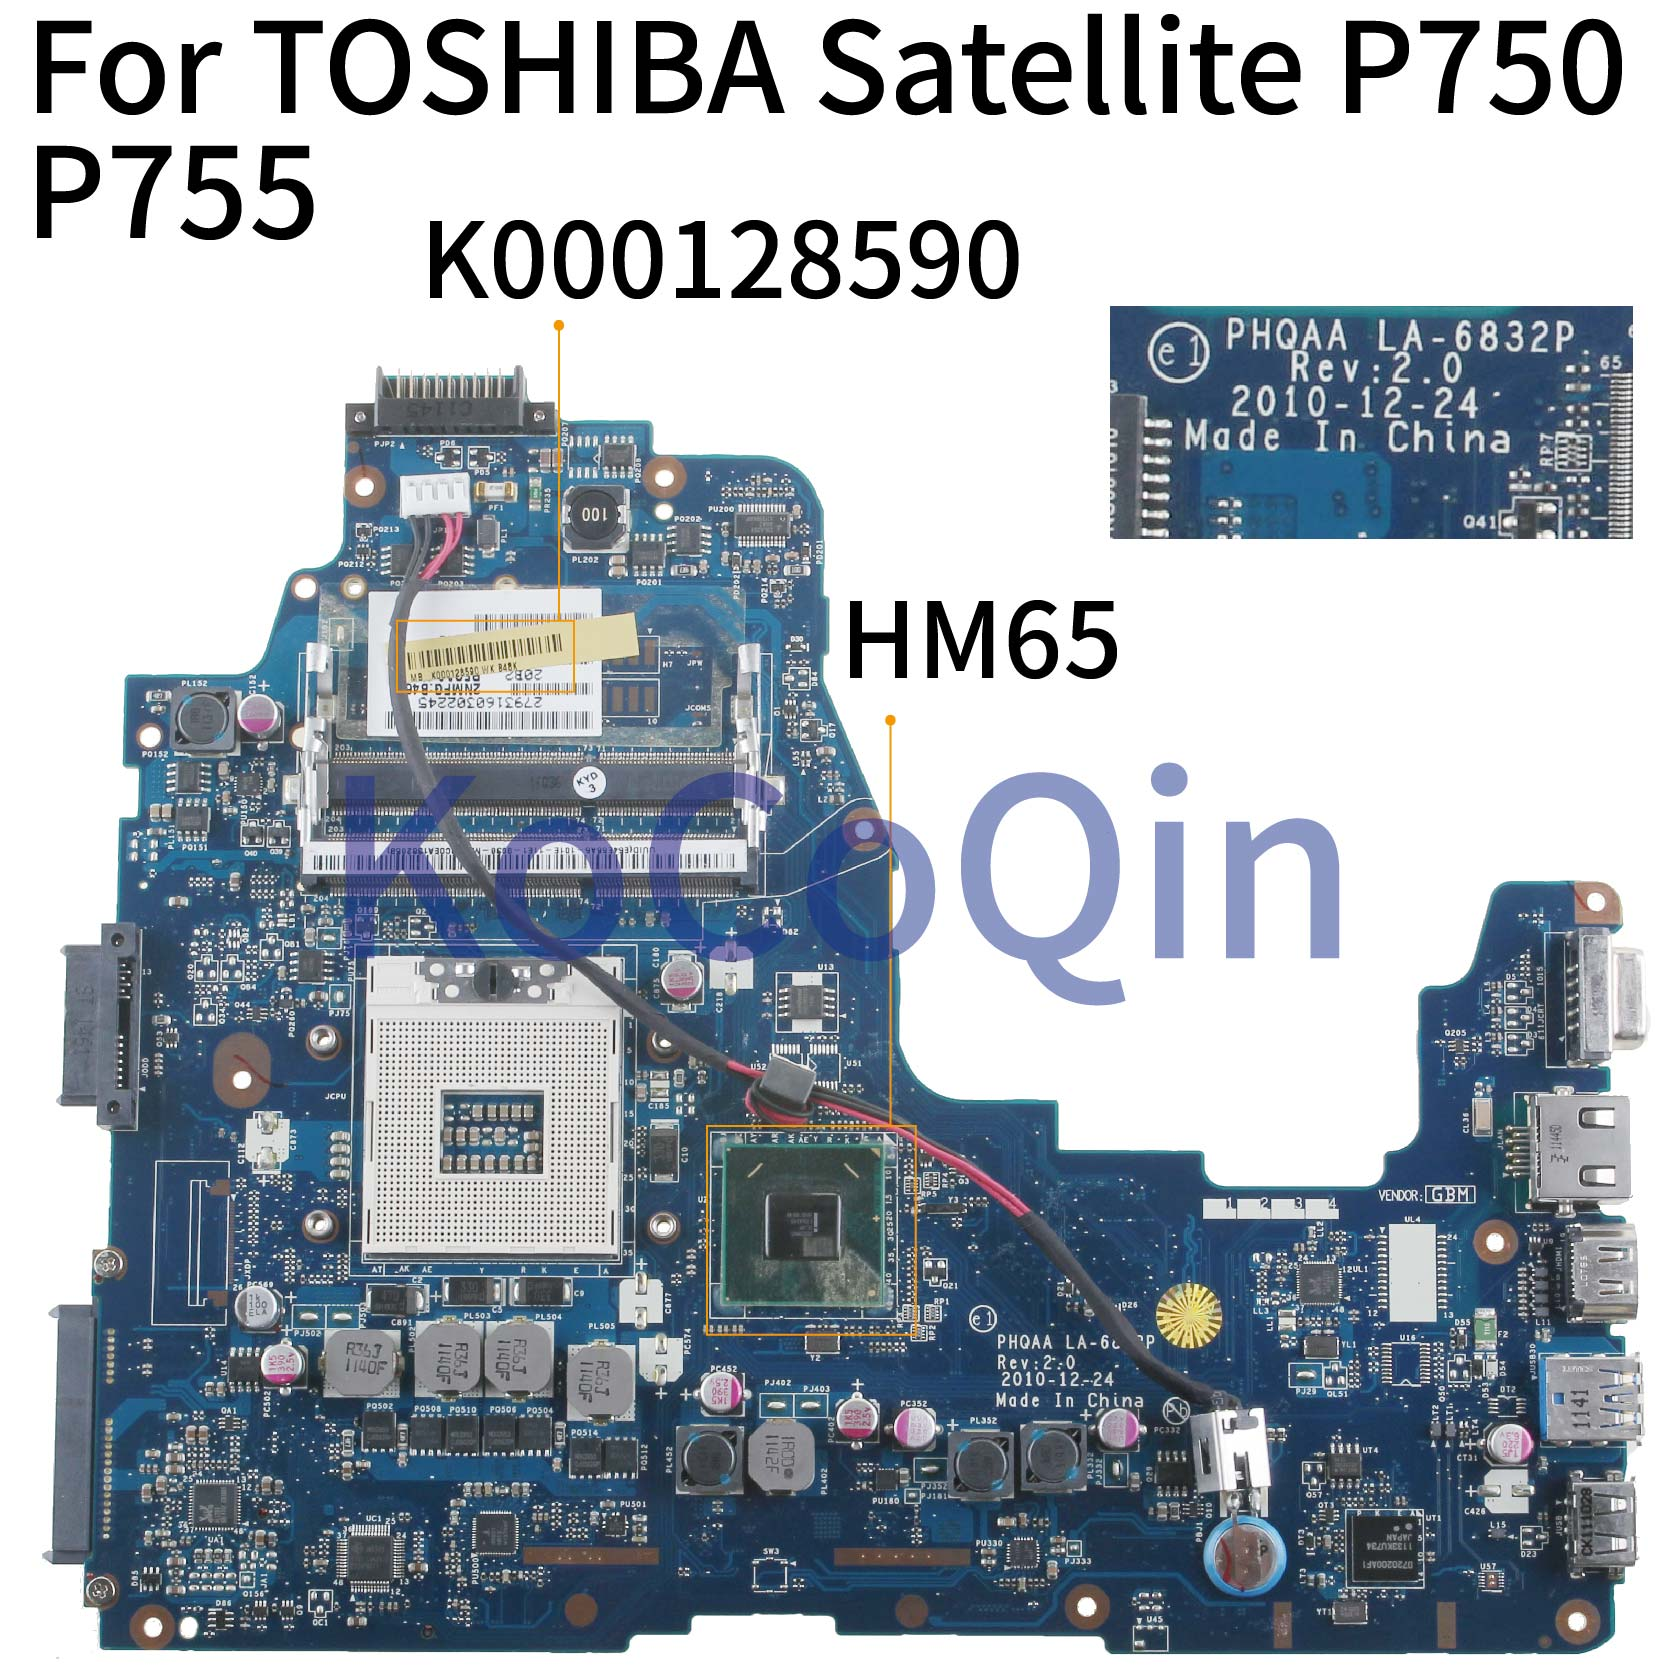 KoCoQin Laptop motherboard For <font><b>TOSHIBA</b></font> <font><b>Satellite</b></font> <font><b>P750</b></font> P755 Mainboard K000128590 PHQAA LA-6832P HM65 image